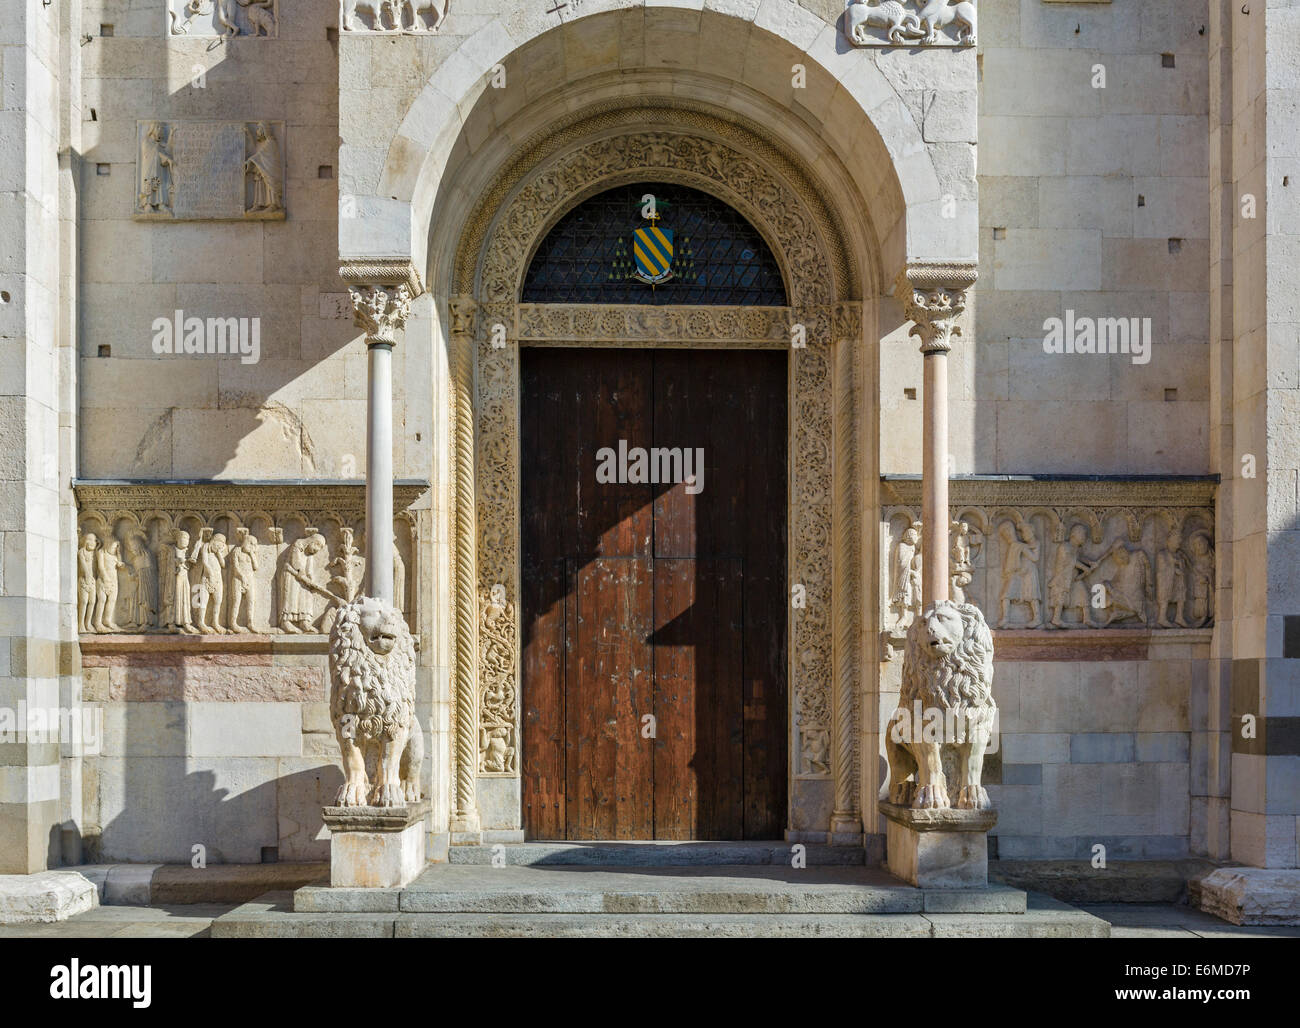 Lions and Wiligelmo reliefs by the door in the western facade of the Duomo, Piazza Duomo, Modena, Emilia Romagna, - Stock Image